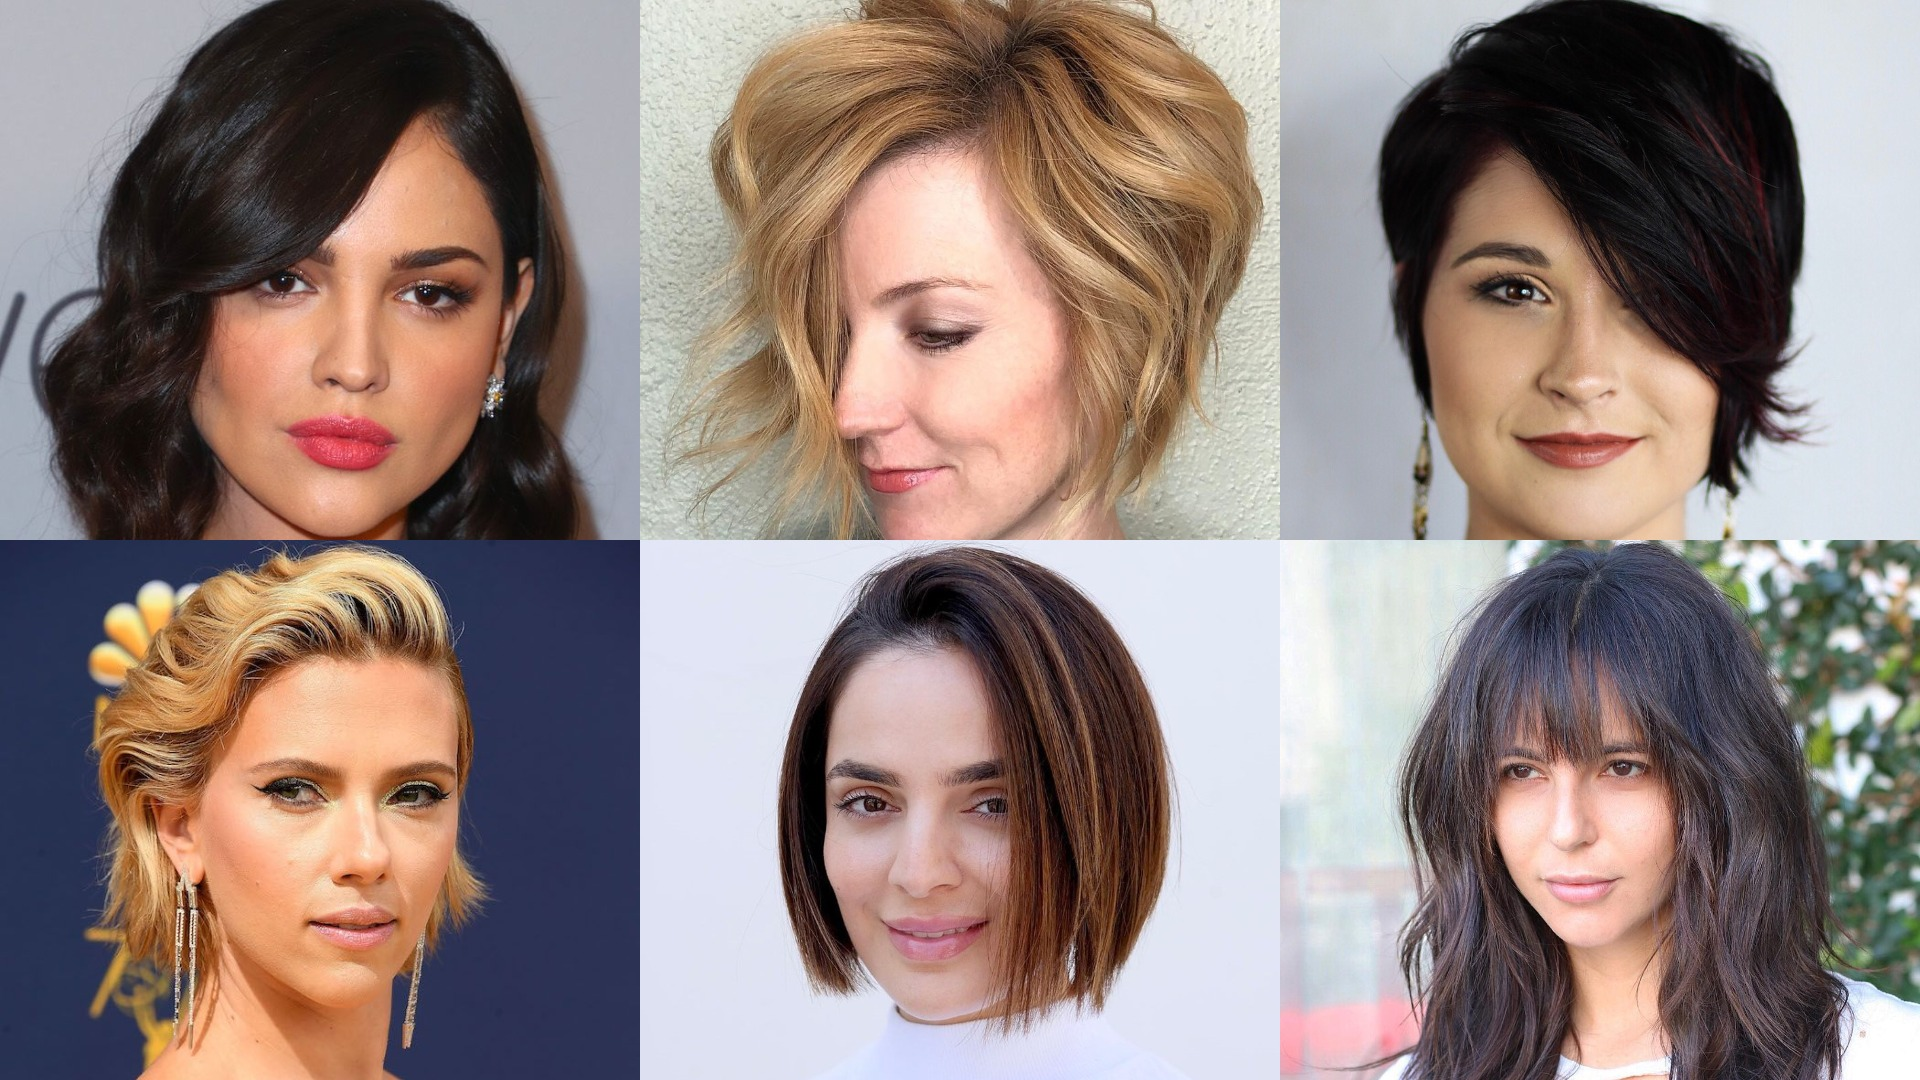 Haircut-for-Your-Face-Shape How to Choose the Best Haircut for Your Face Shape